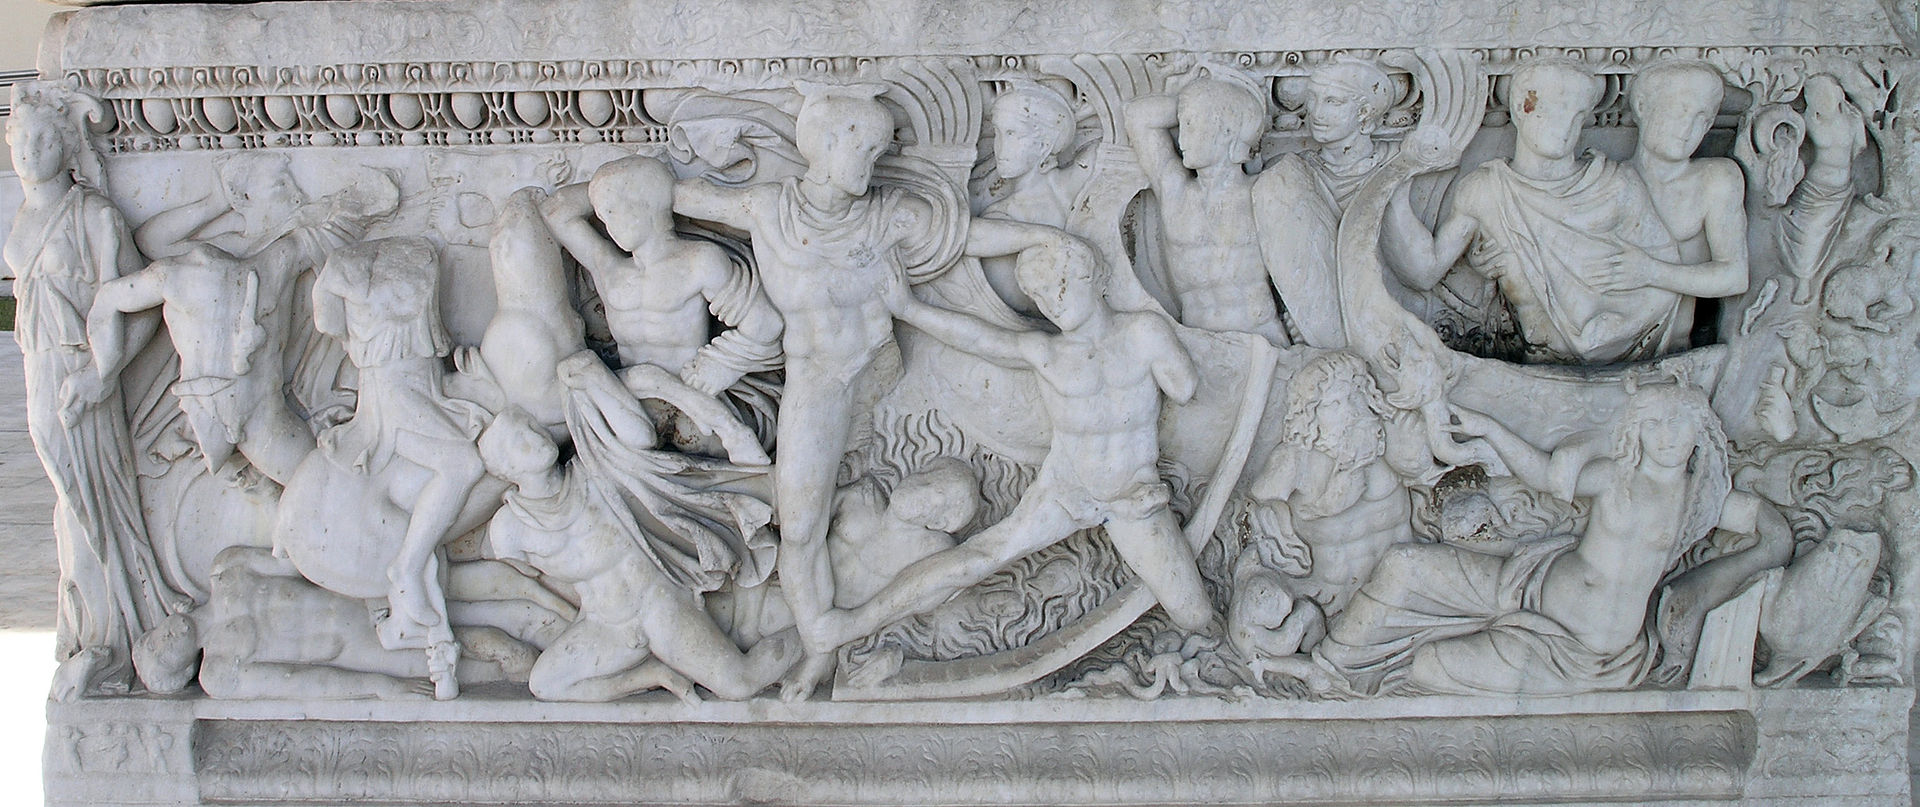 THAM-Battle at the ships sarcophagus.jpg